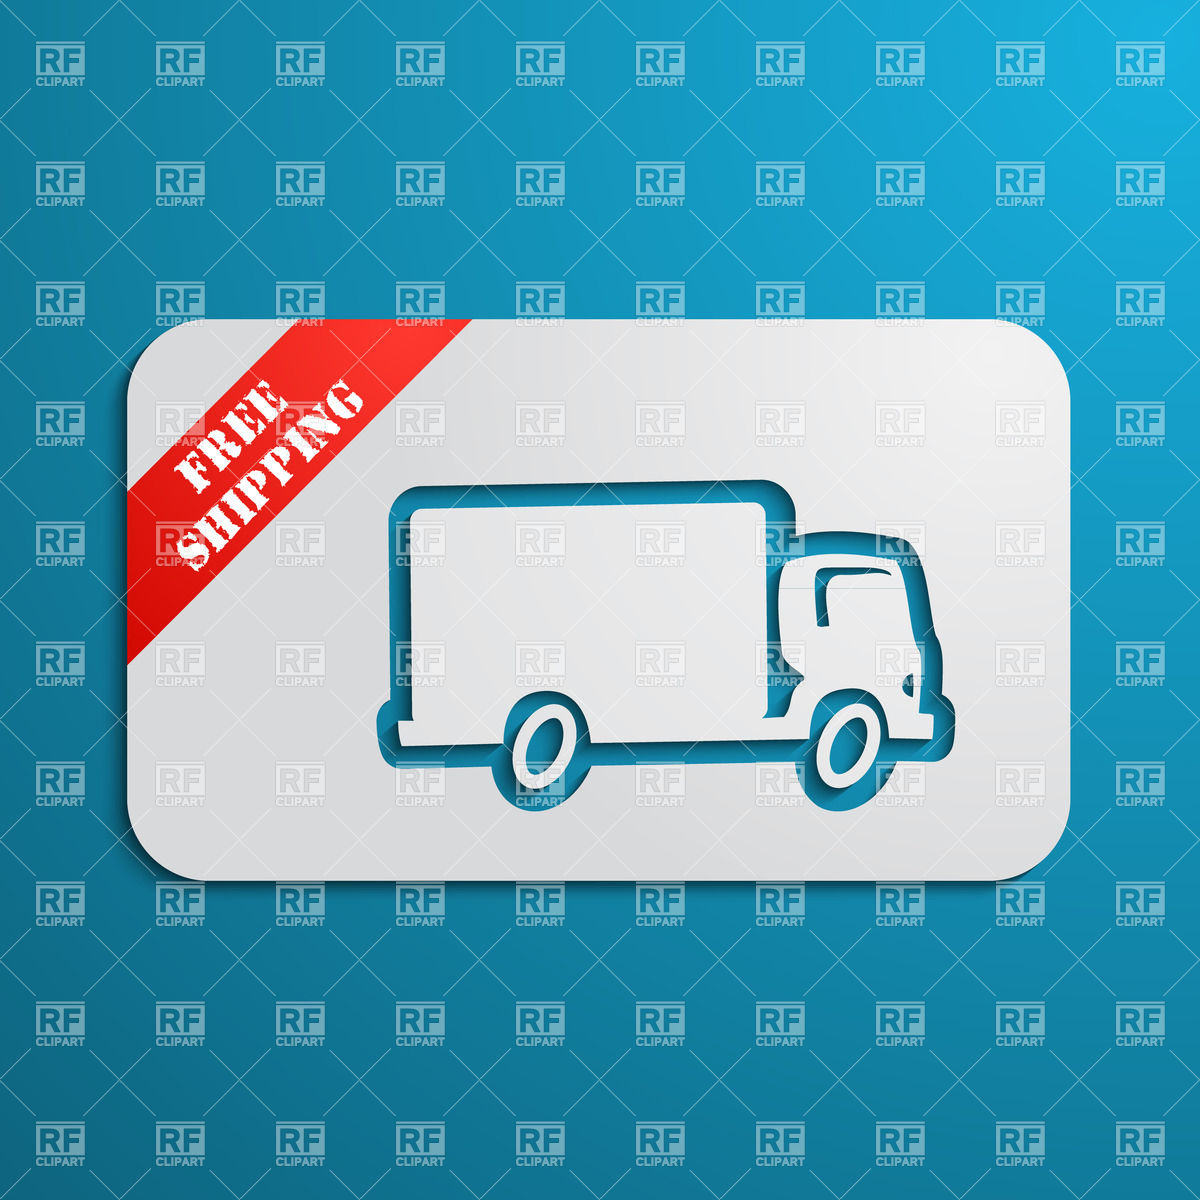 Free Shipping   Silhouette Of Delivery Truck On Label With Red Corner